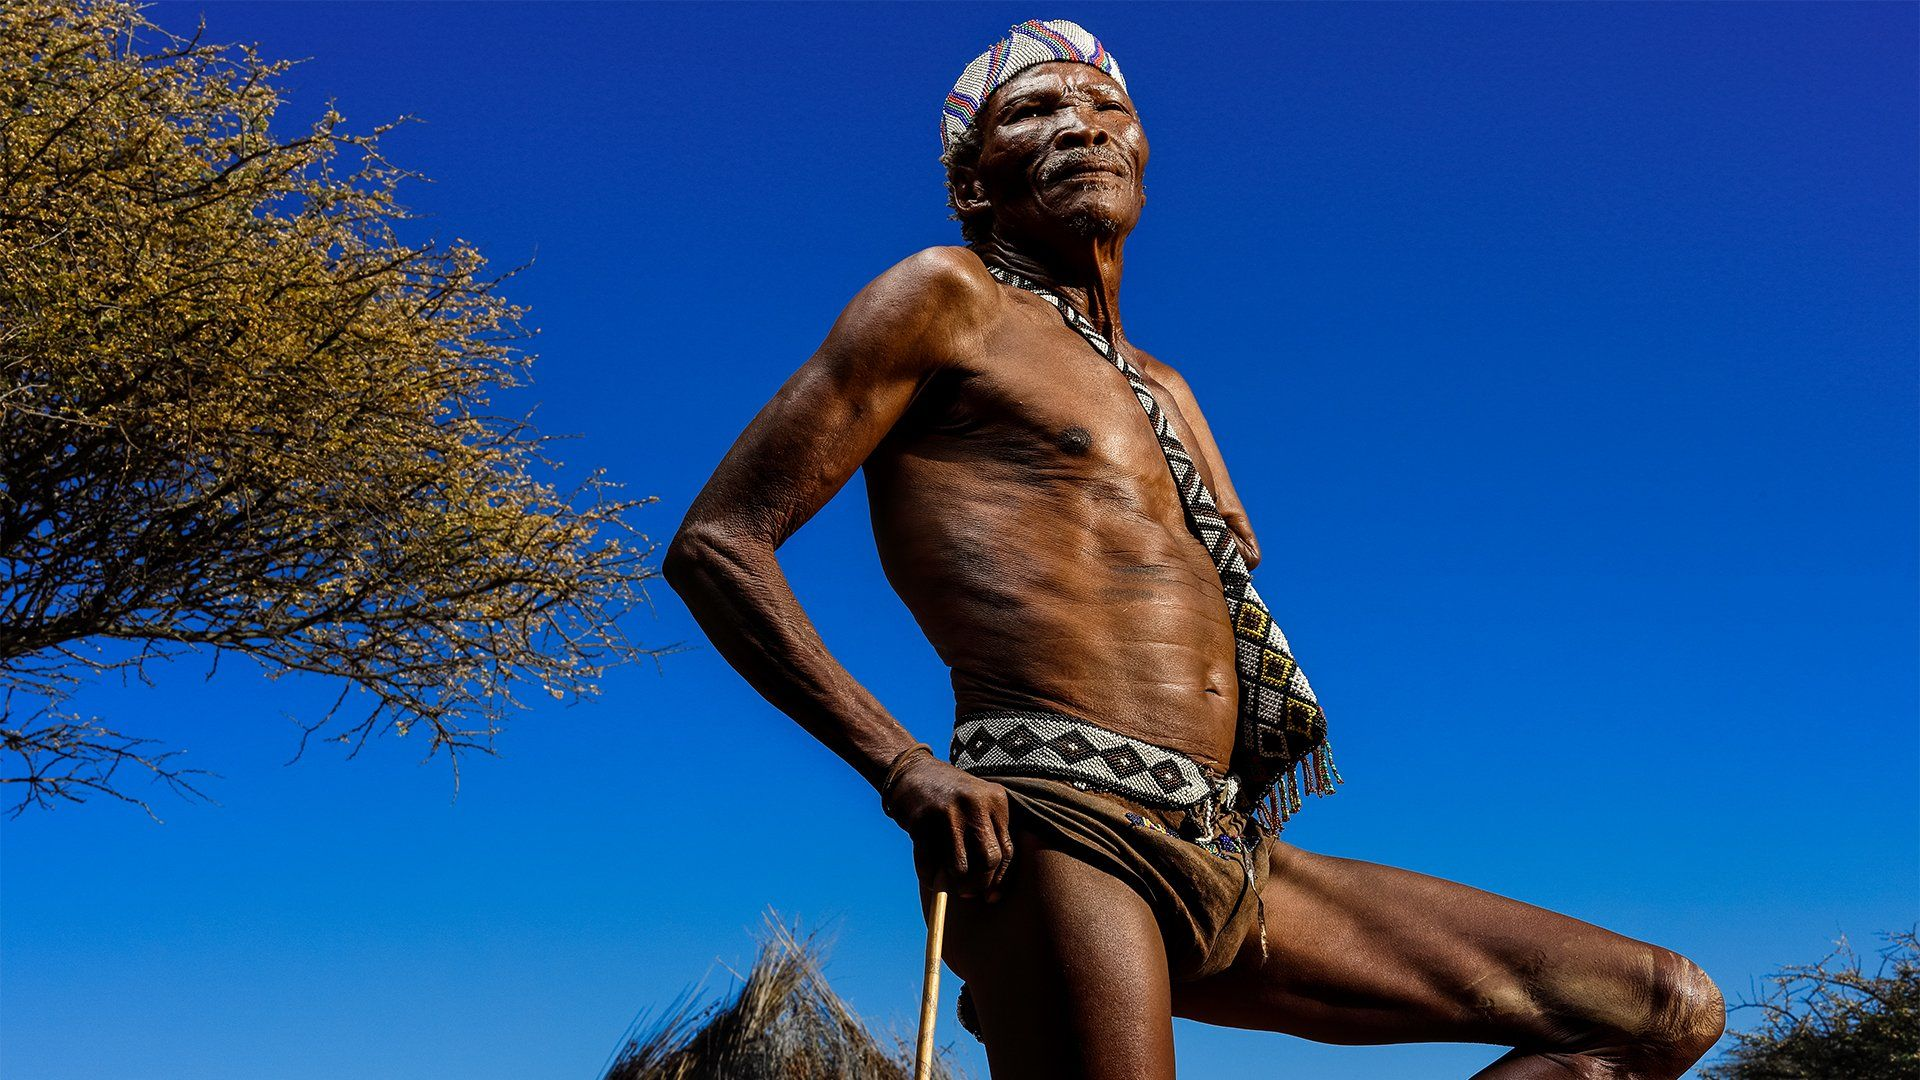 Brent Stirton capturing a namibian male standing behind dark blue sky shot on the Canon EOS R & RF 50mm F1.2L USM